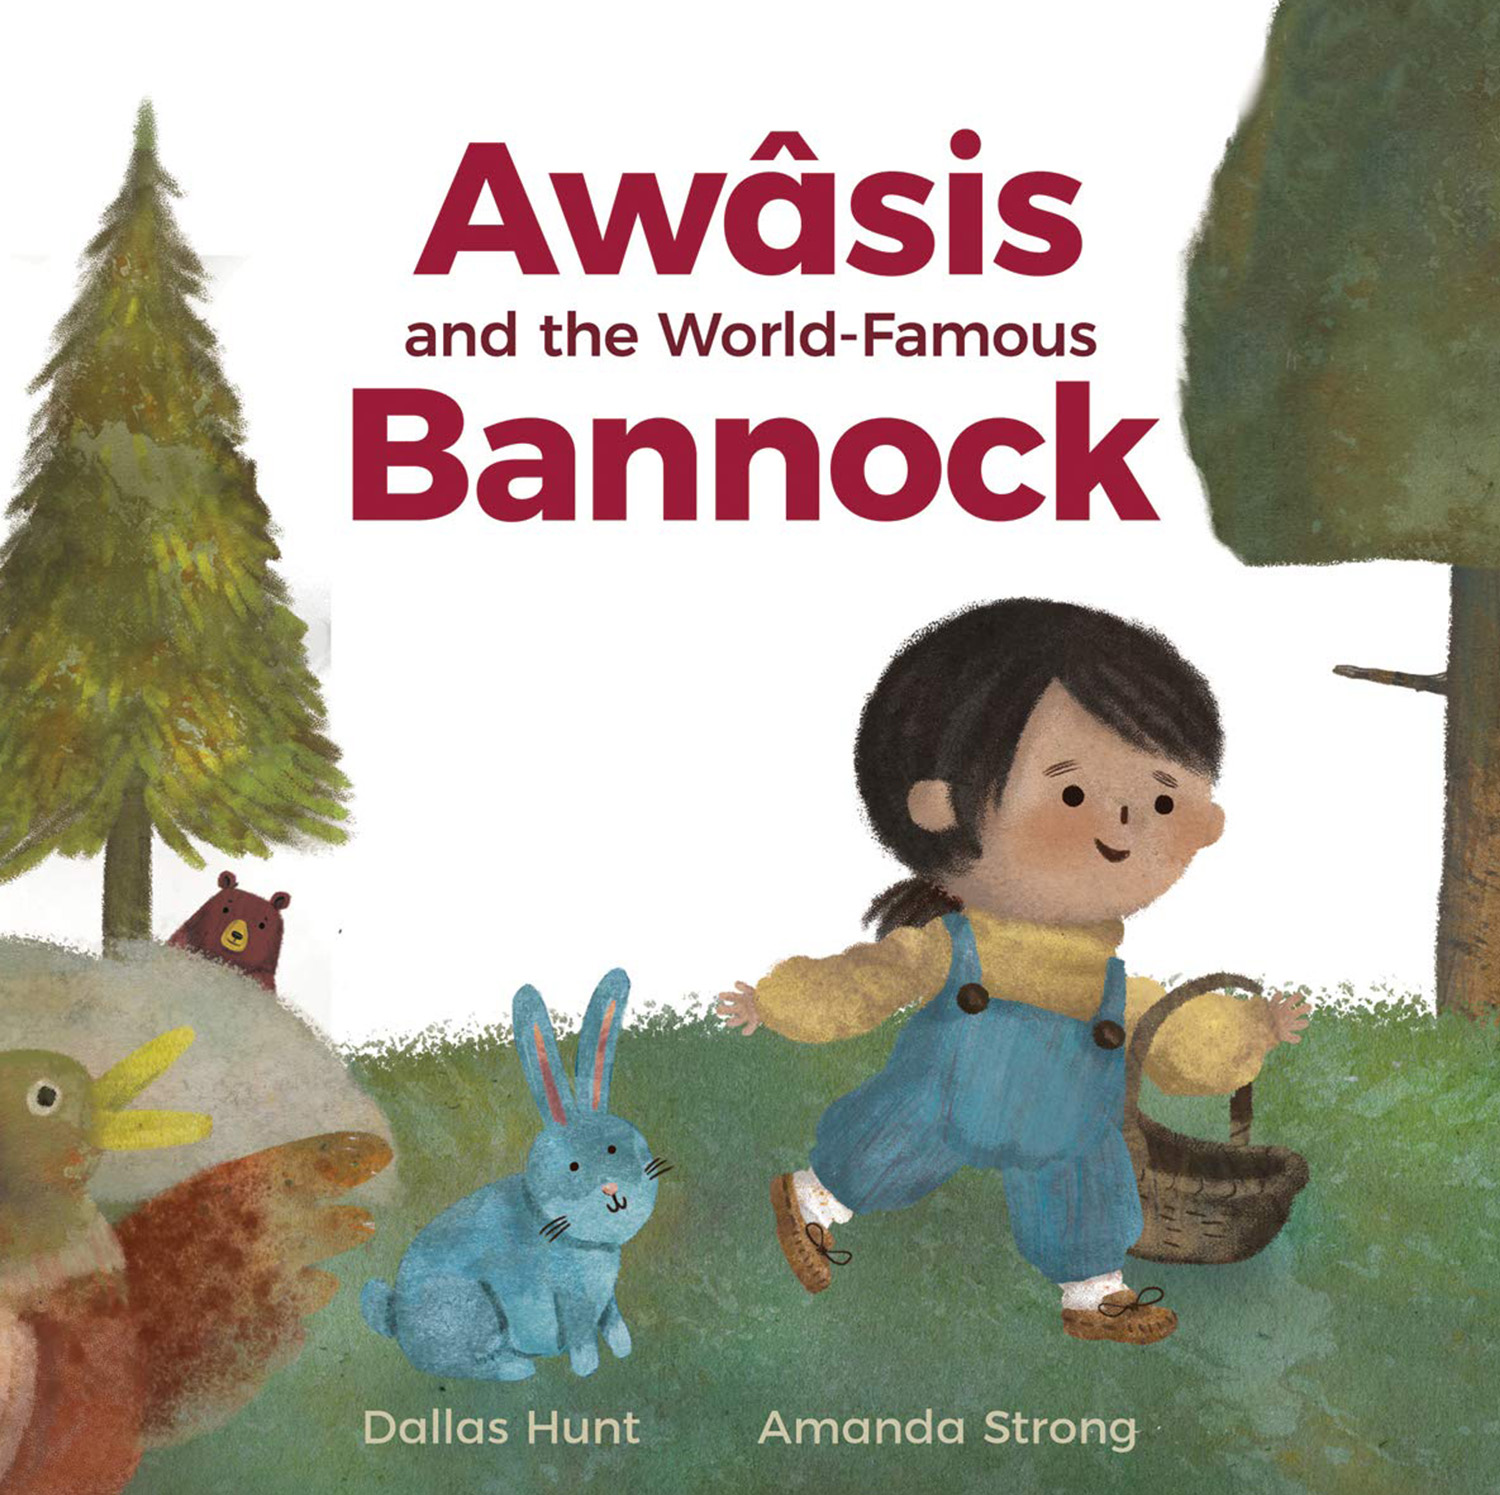 Awasis and the World-famous Bannock by Dallas Hunt